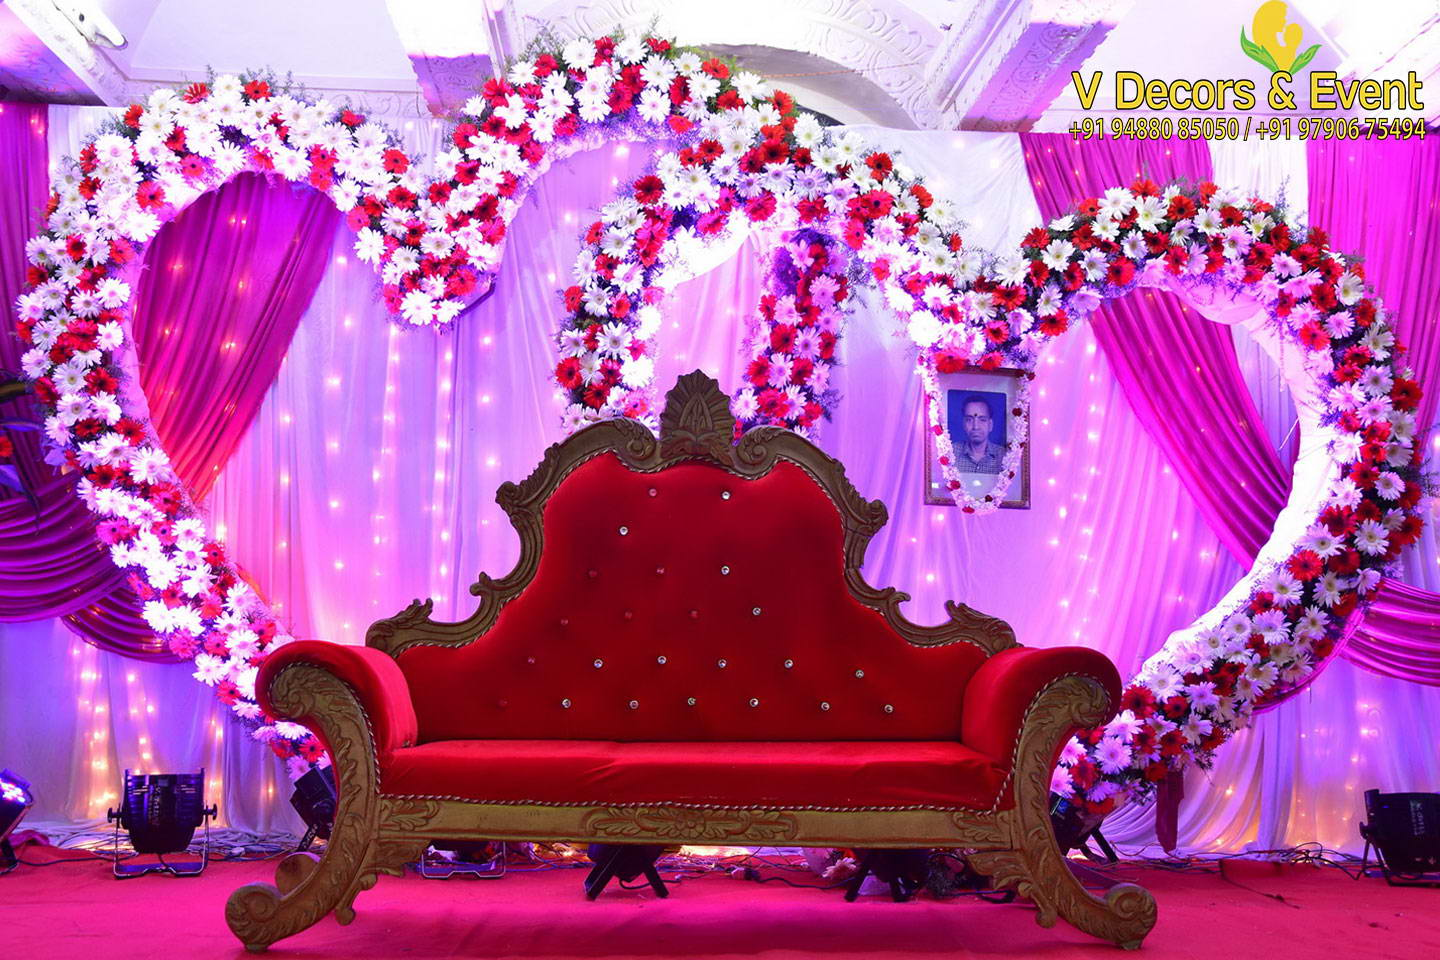 Wedding Decorations Tindivanam Wedding Decorations In Tindivanam